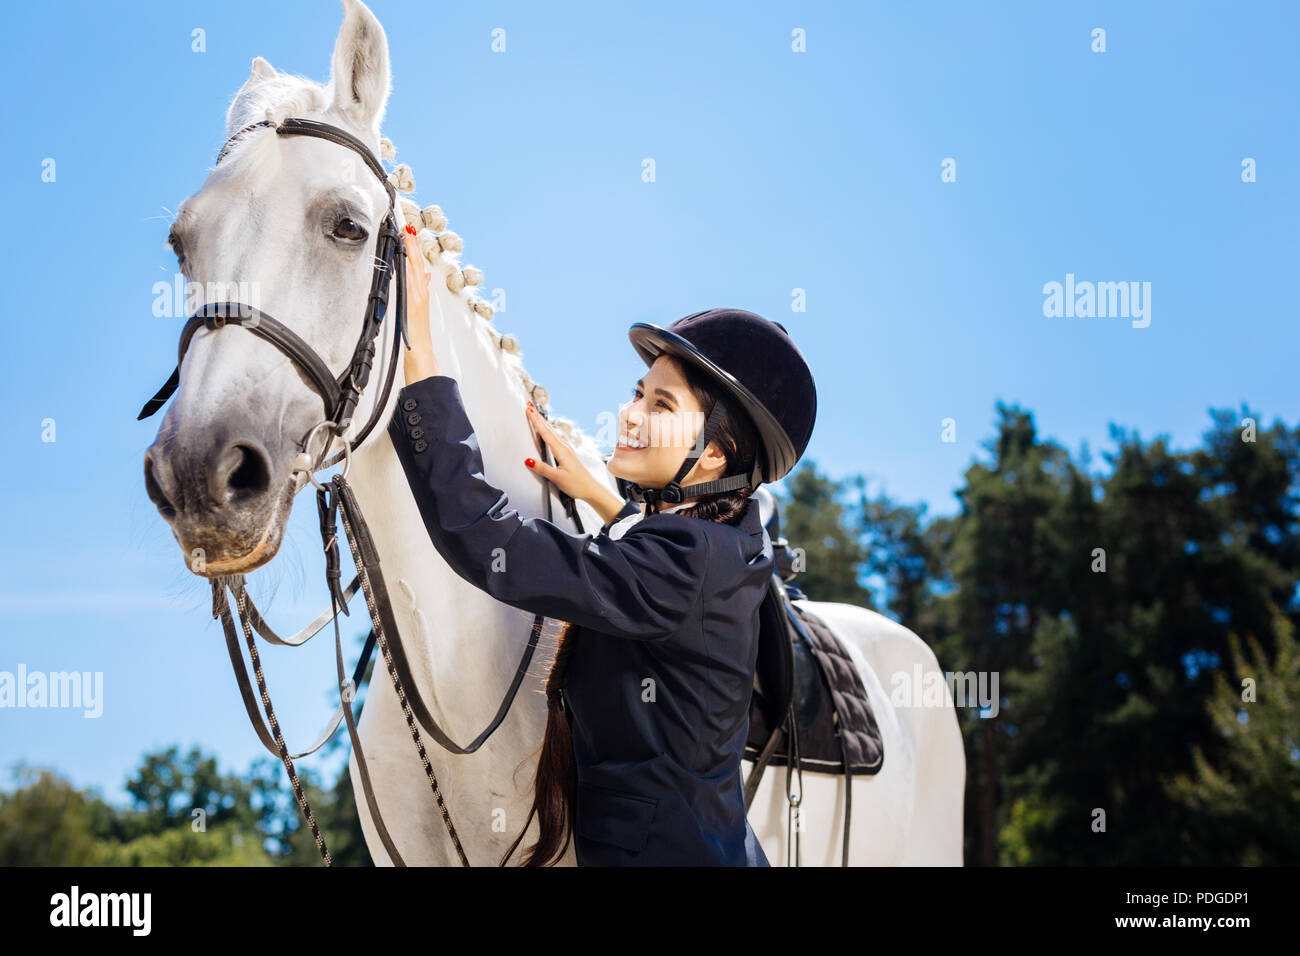 Appealing horsewoman smiling while looking at her gentle white horse - Stock Image